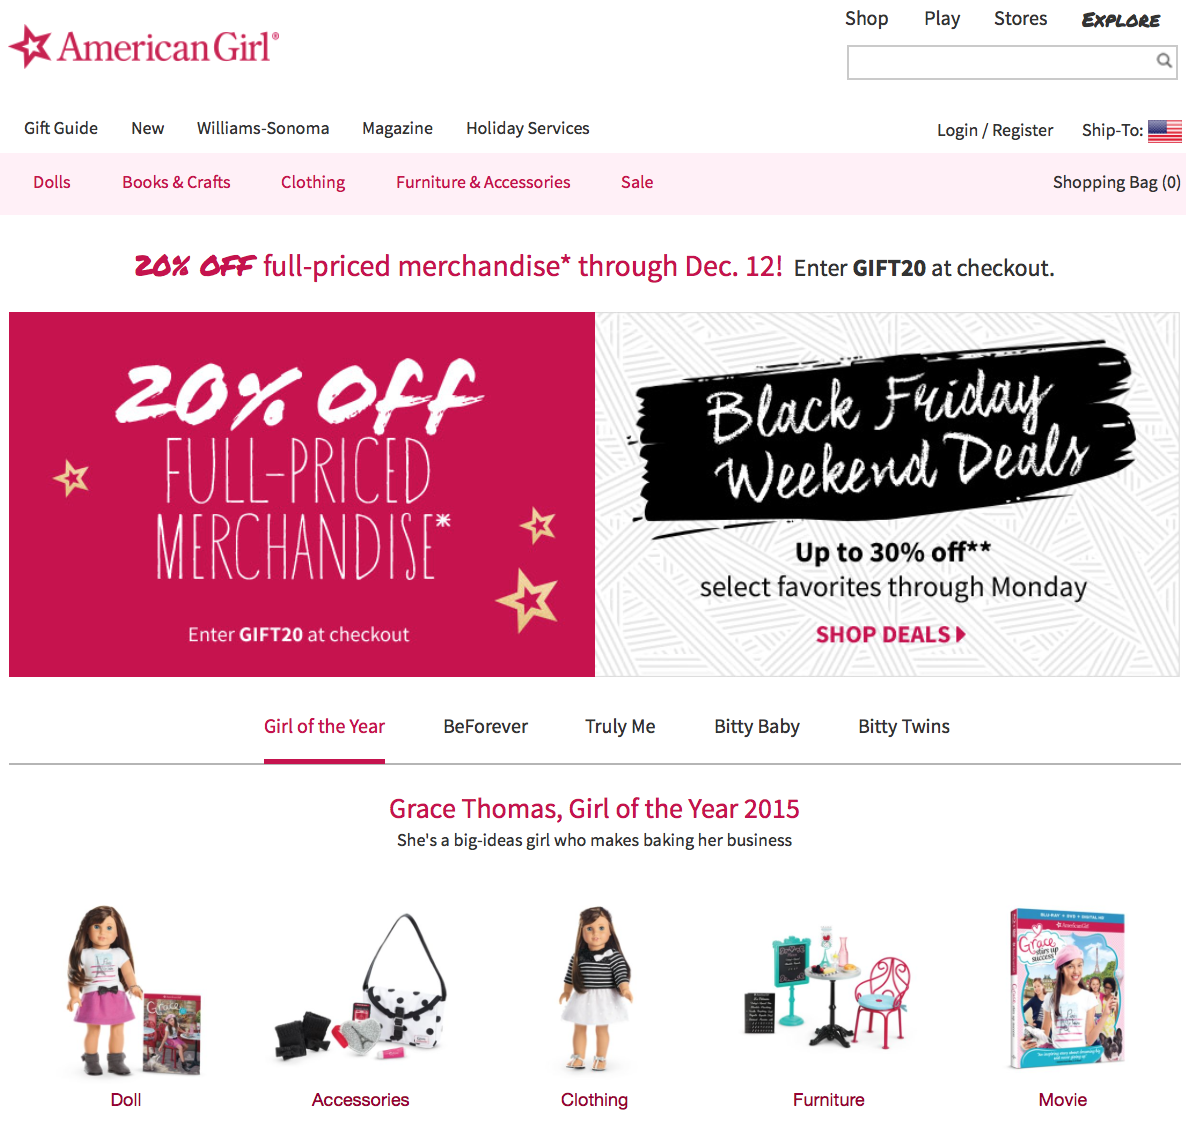 Does American Girl Have Black Friday Sales